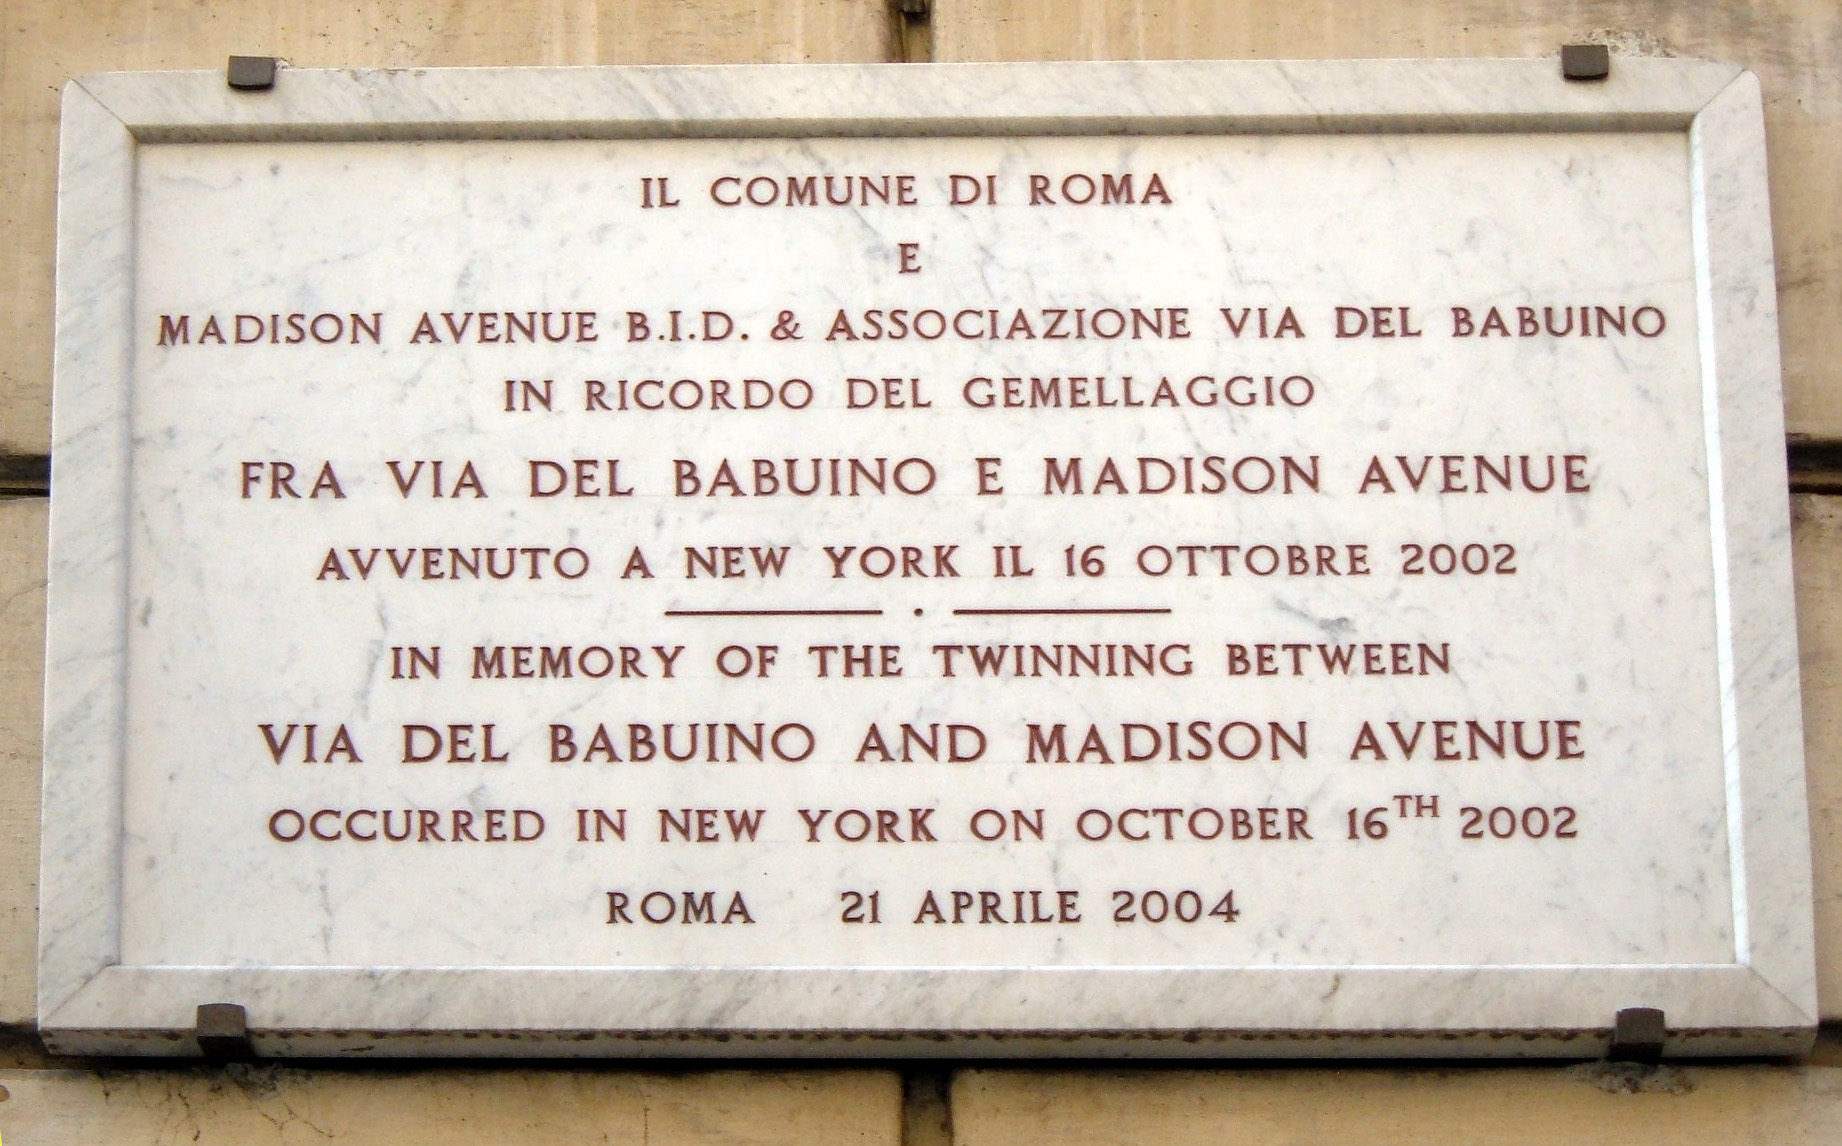 Gemellaggio_Via_del_Babuino_Rome_-_Madison_Avenue_NY